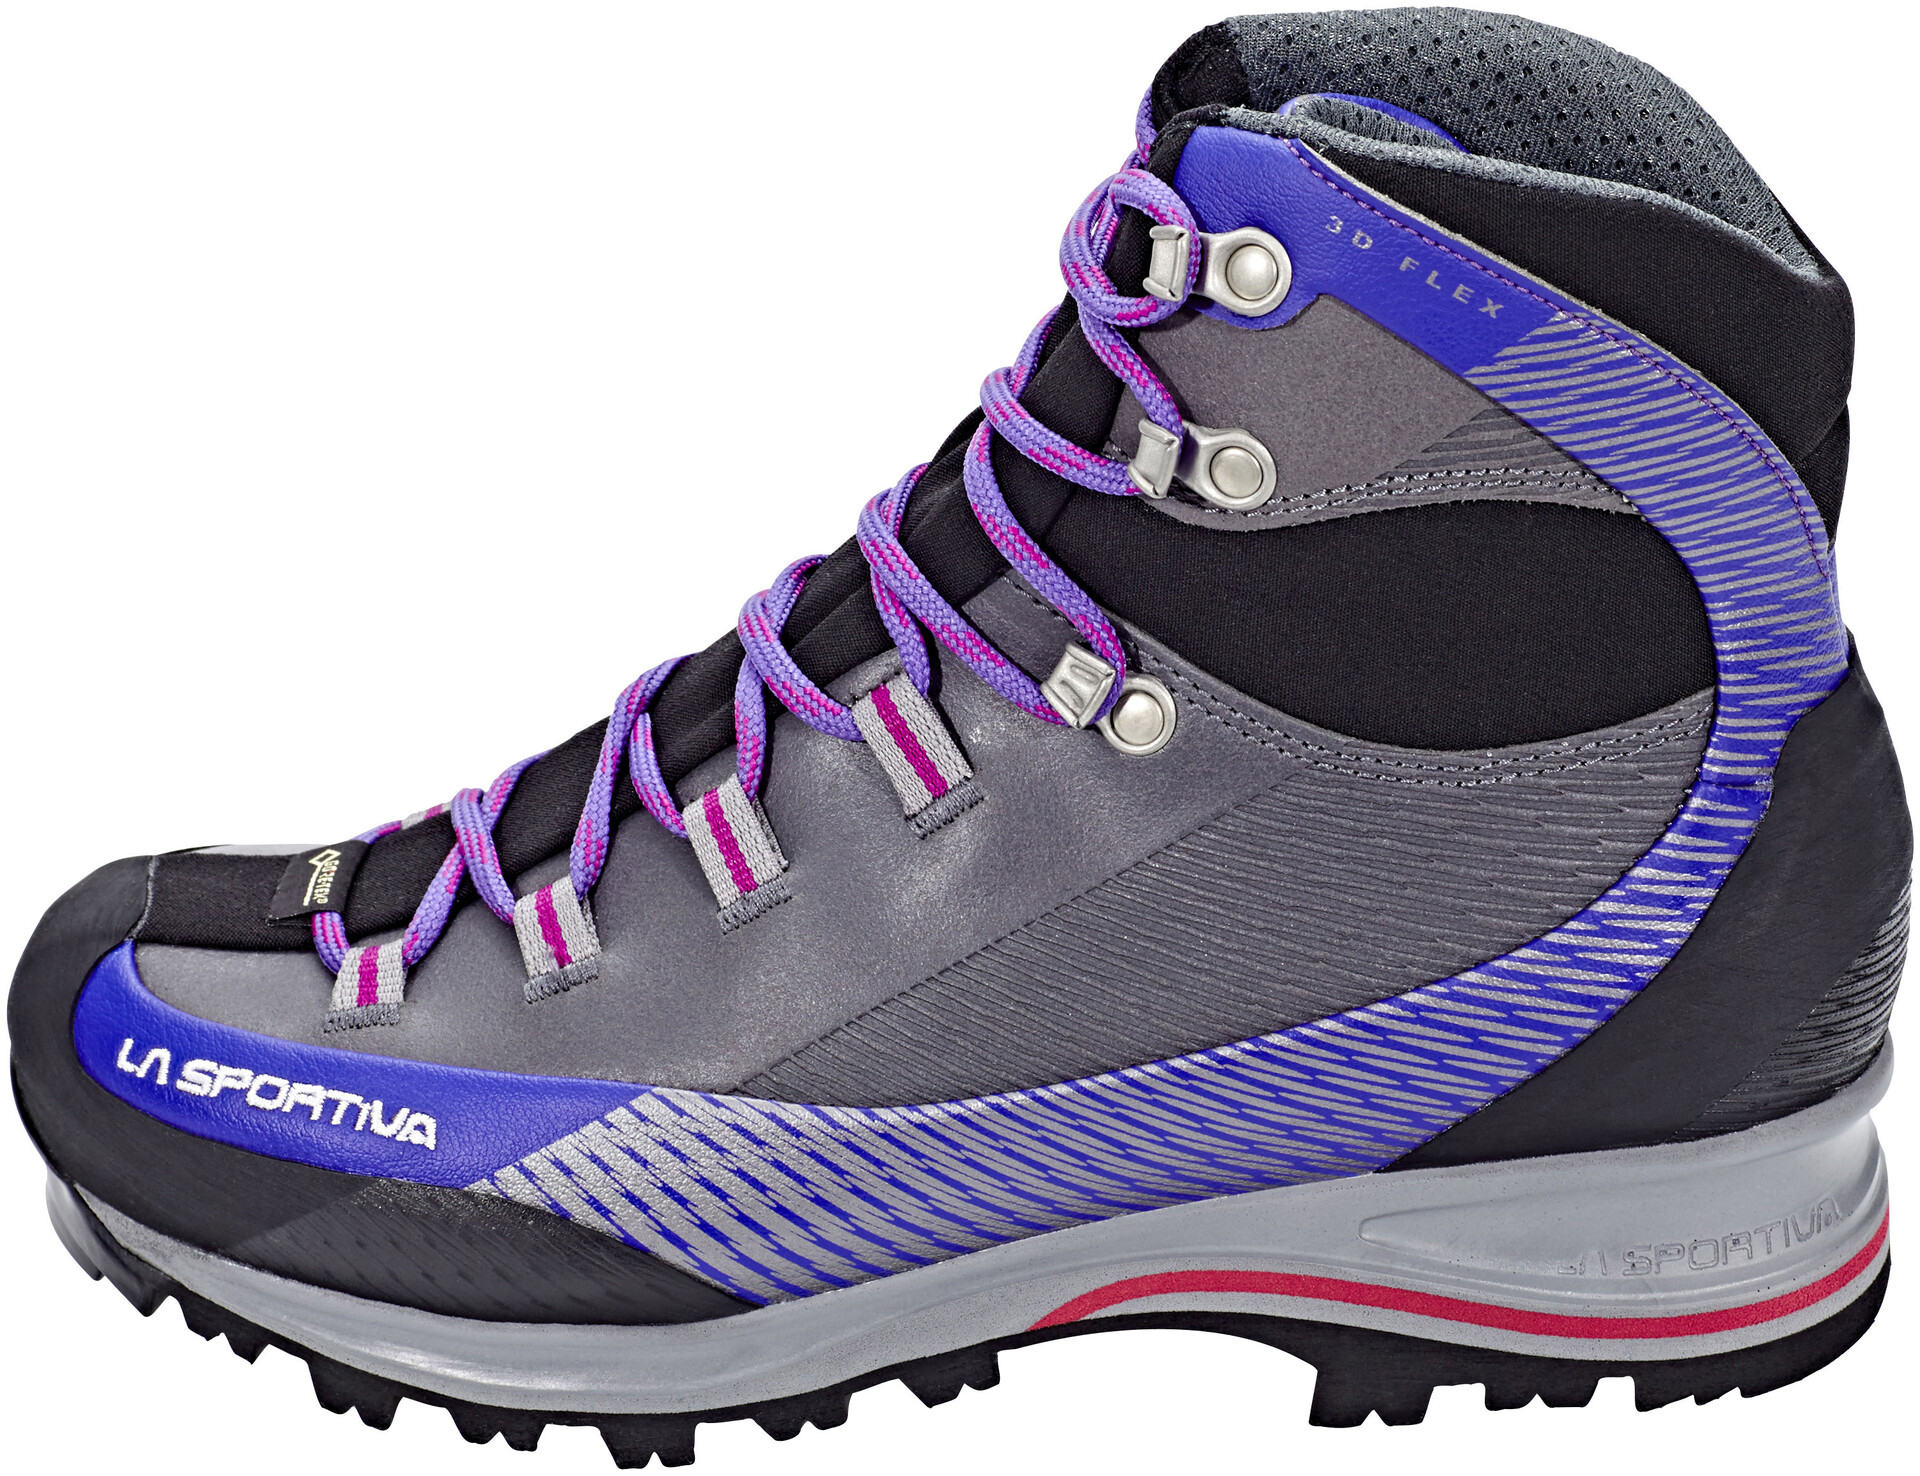 La Sportiva Trango TRK Leather GTX Chaussures Femme, iris bluepurple